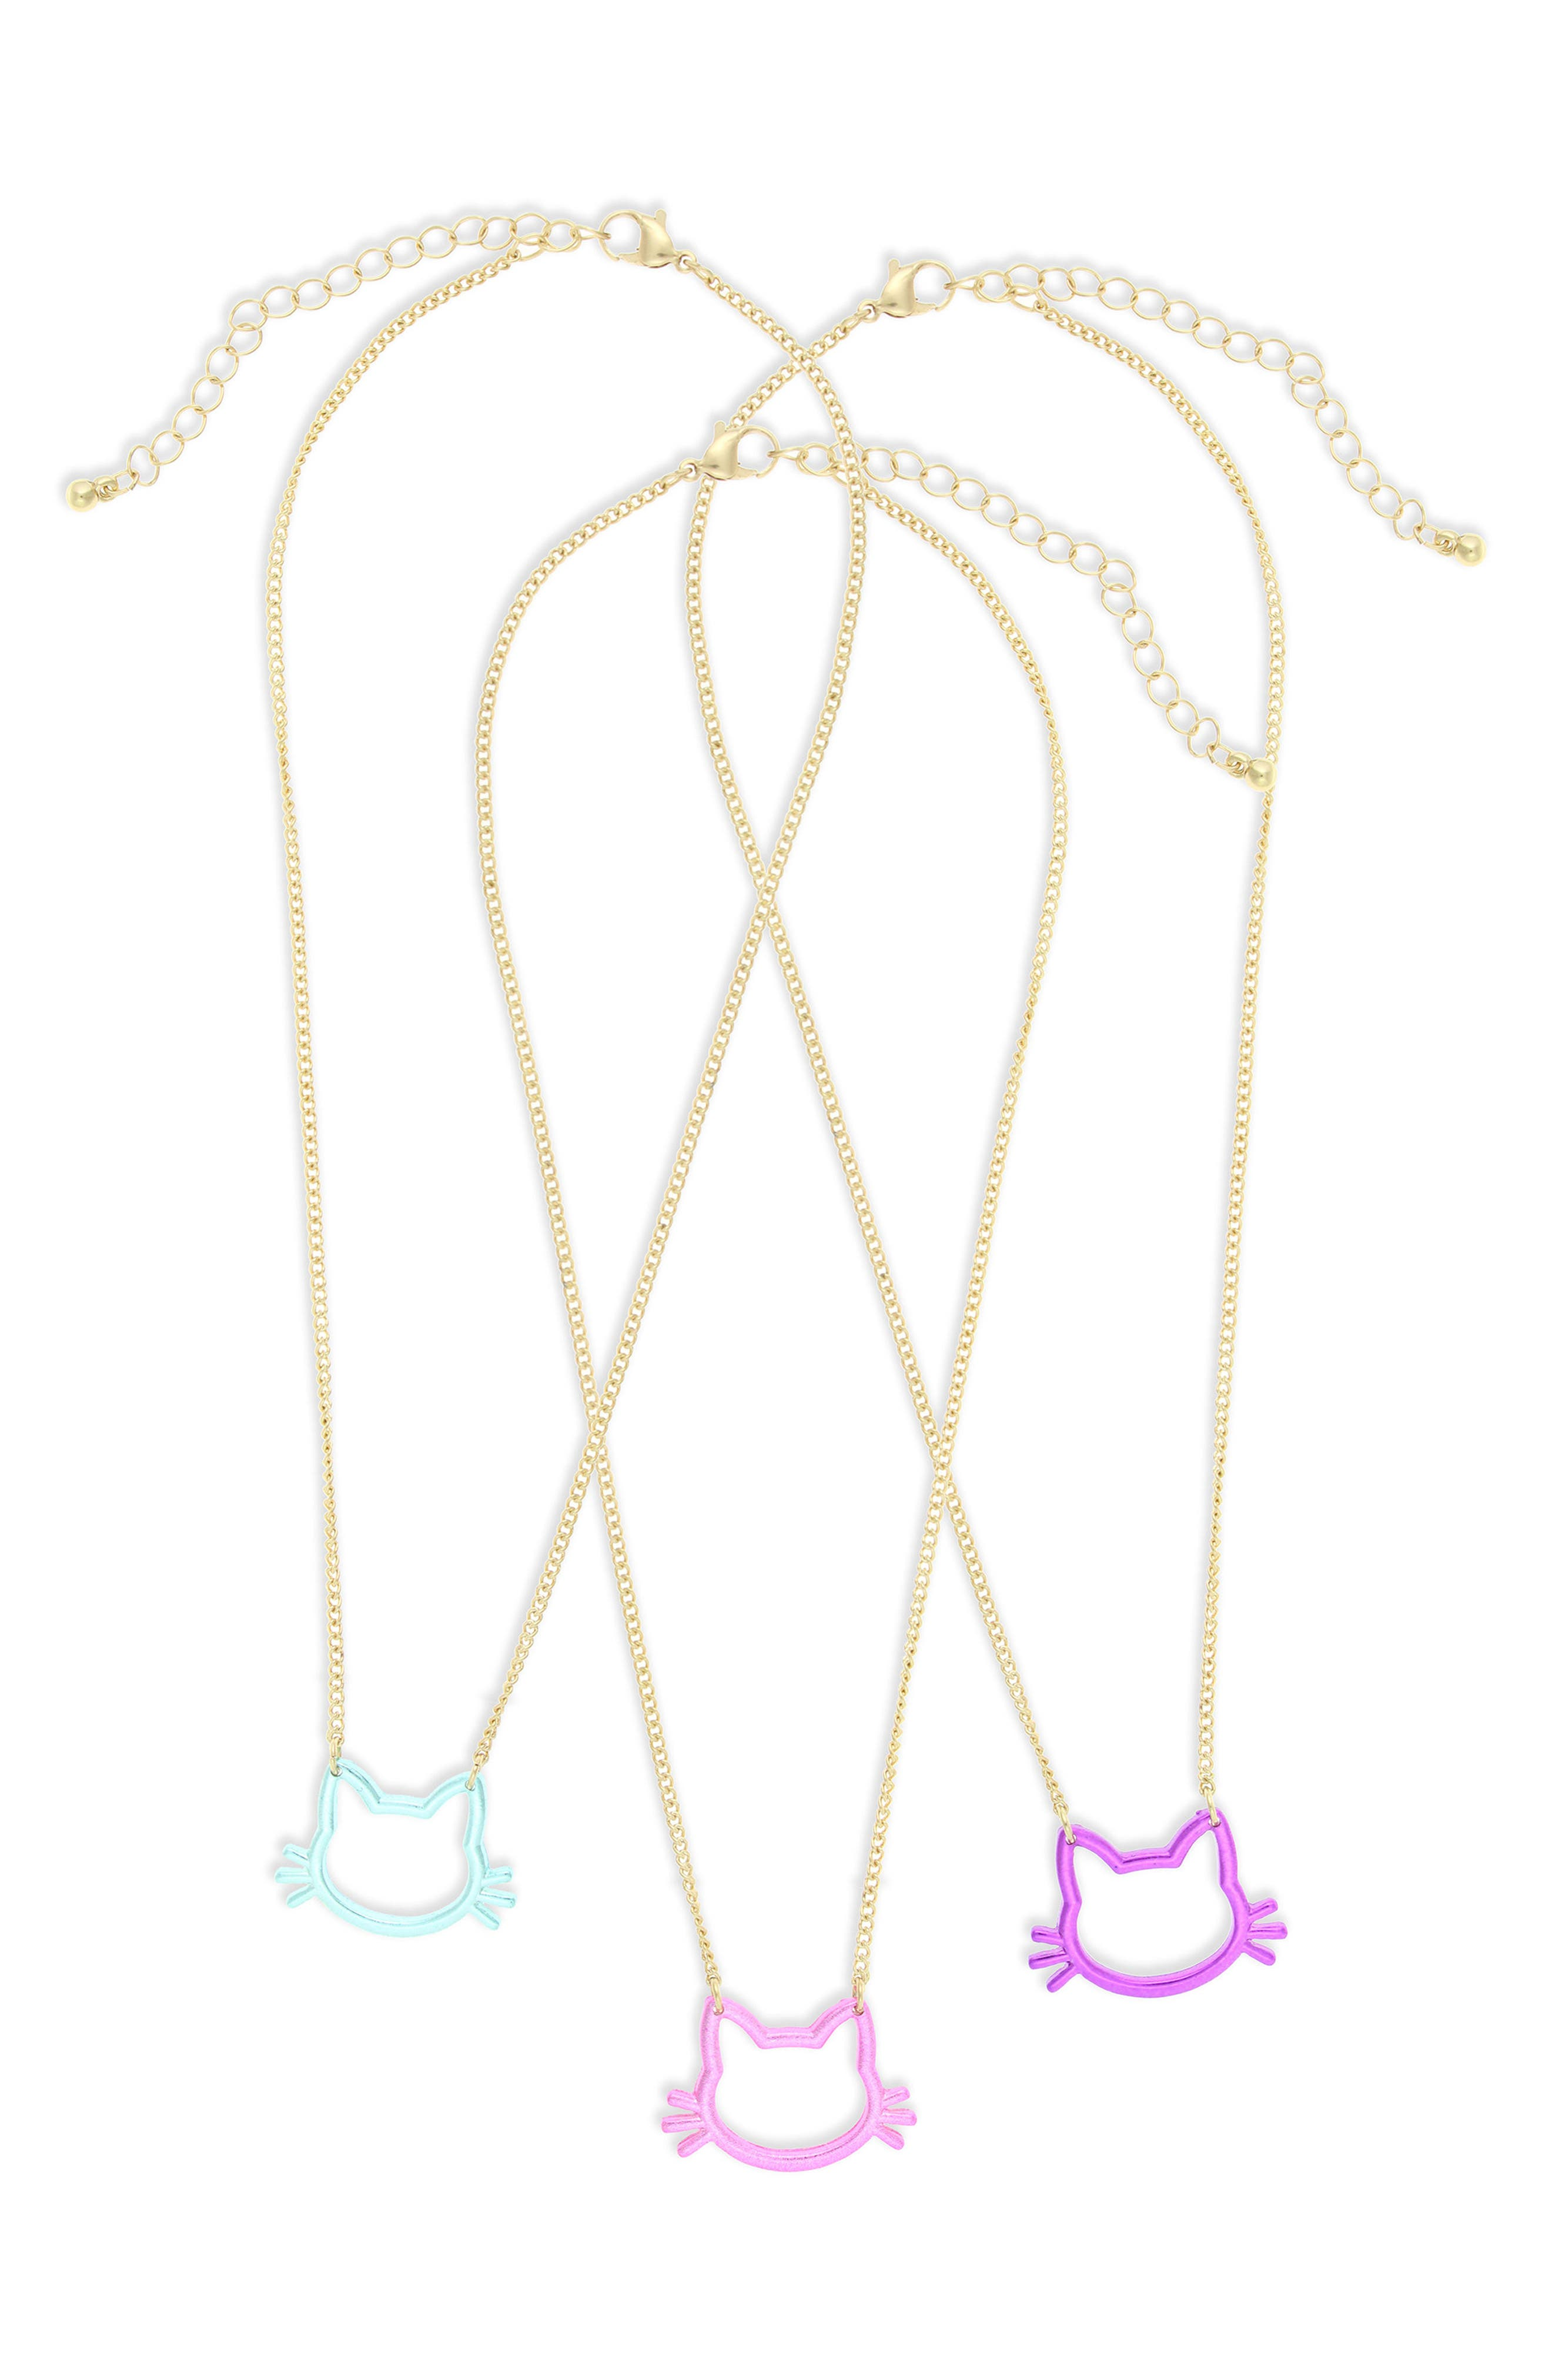 Set of 3 Cat Pendant Necklaces,                             Main thumbnail 1, color,                             655